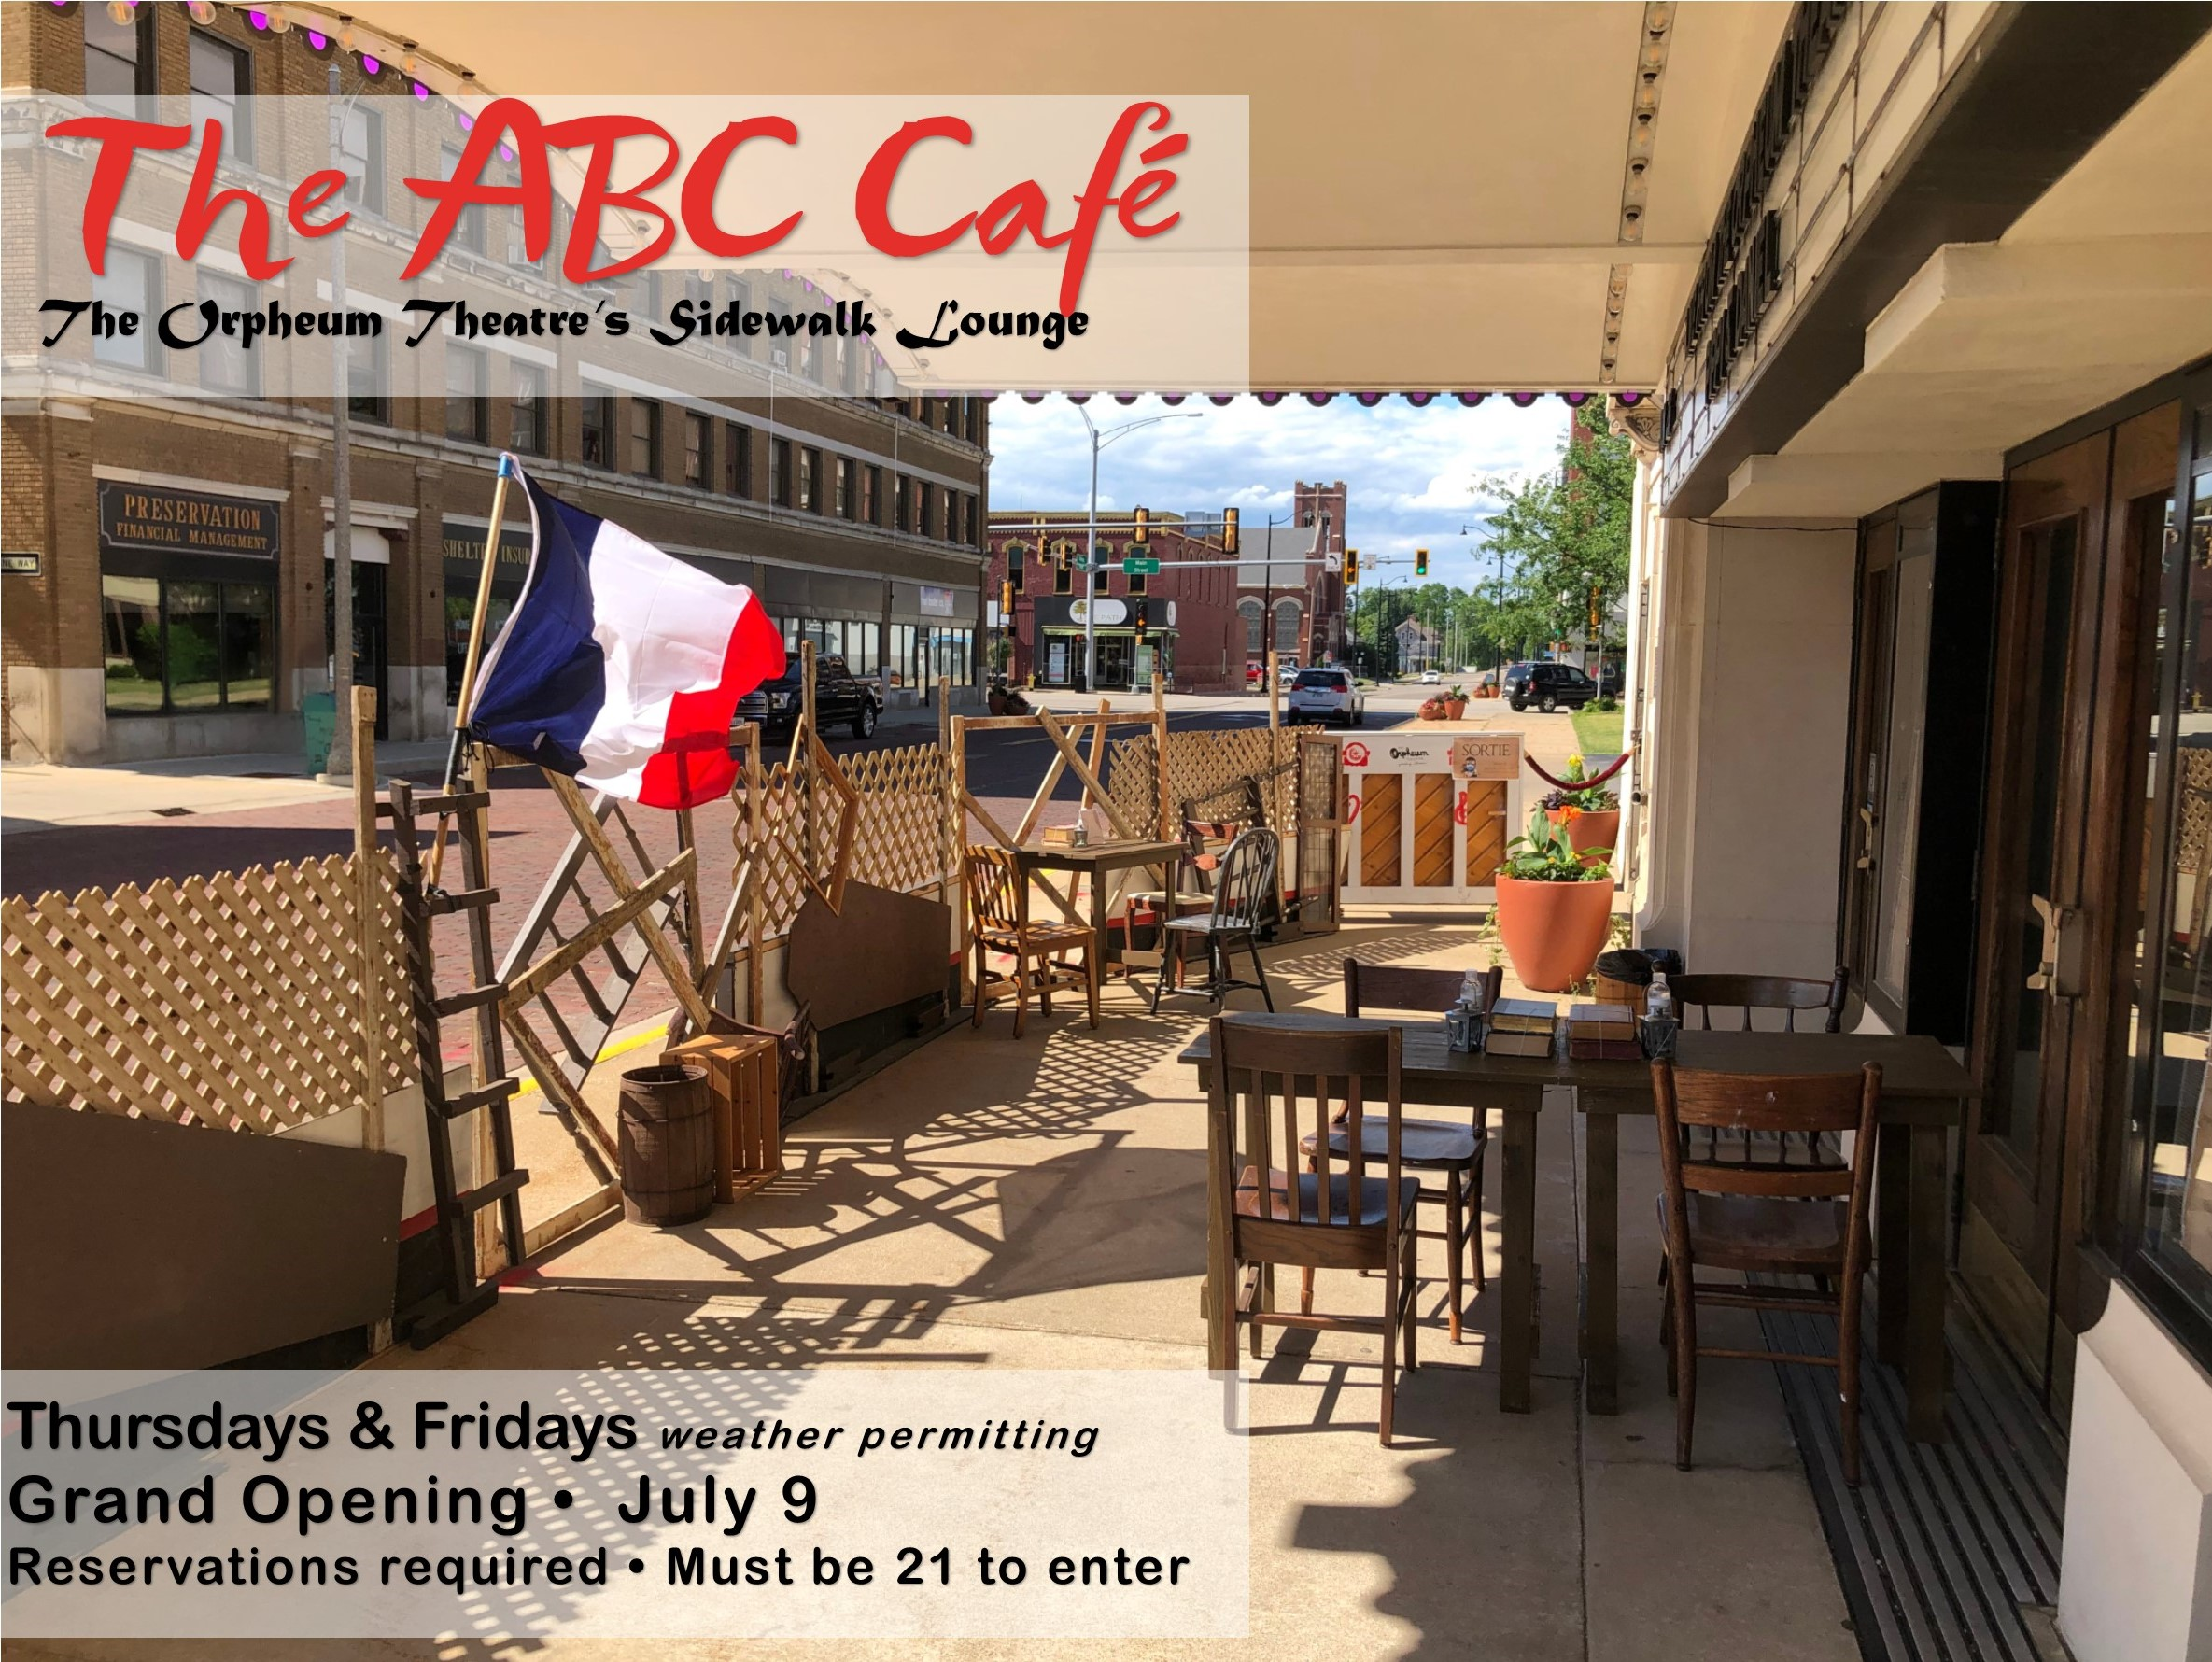 The ABC Cafe at The Orpheum Theatre